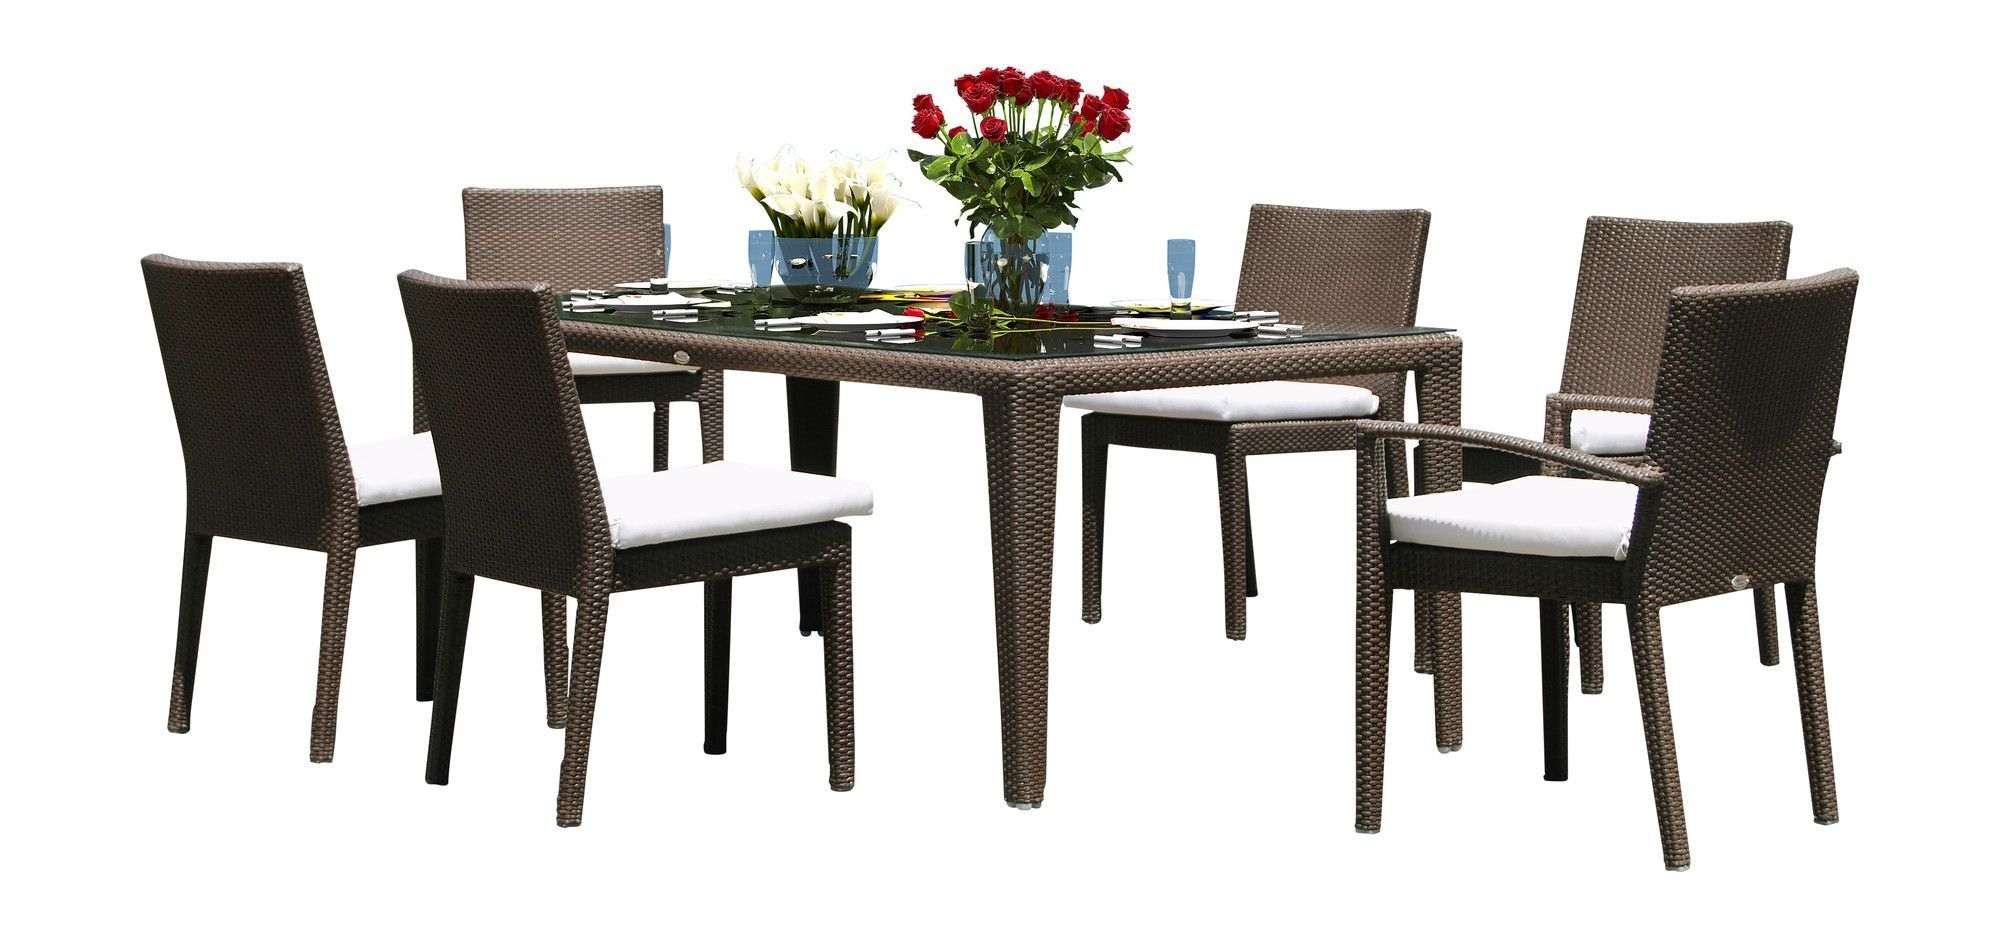 Hicklin 7 Piece Dining Set With Cushions | Outdoor Products And Products Intended For 2017 Chapleau Ii 7 Piece Extension Dining Tables With Side Chairs (Image 17 of 20)